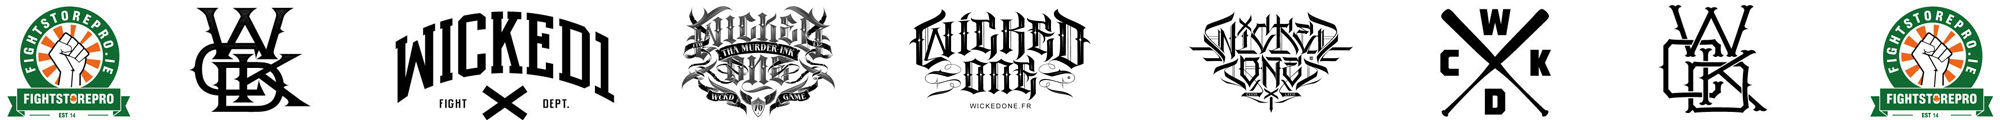 Wicked One - Fightstore Ireland